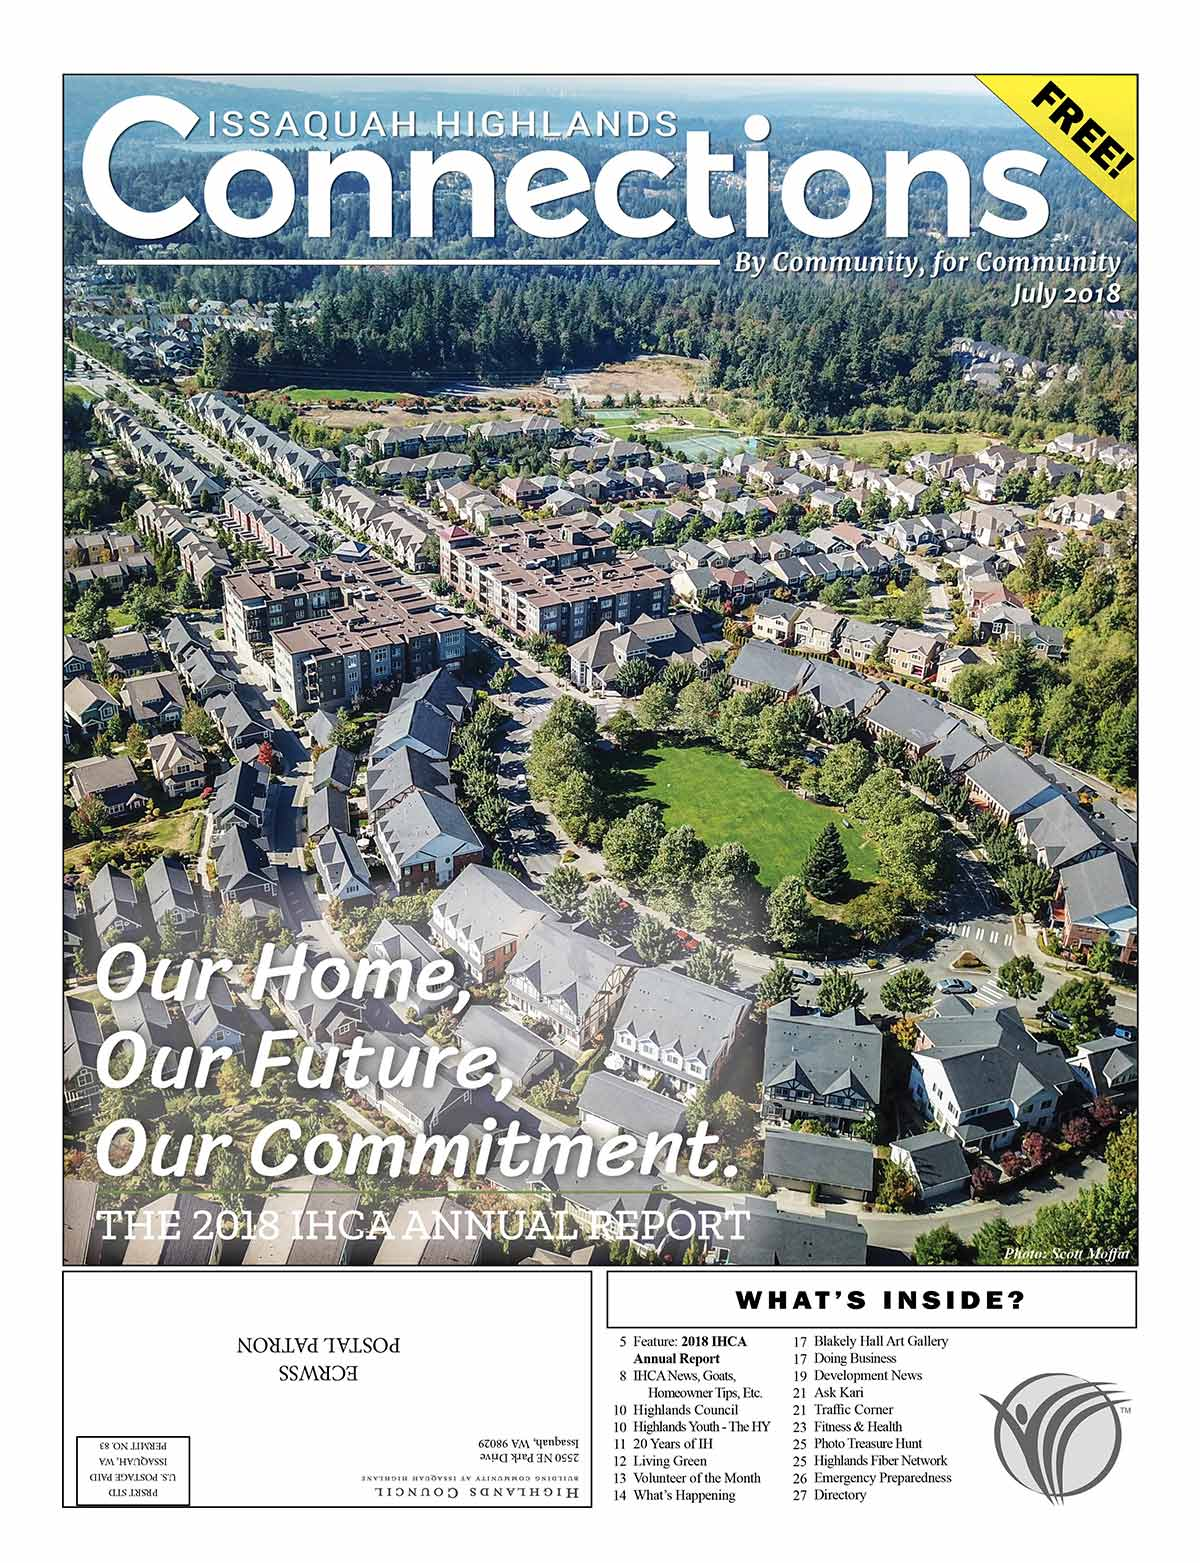 Issaquah Highlands Connections July IHCA Report